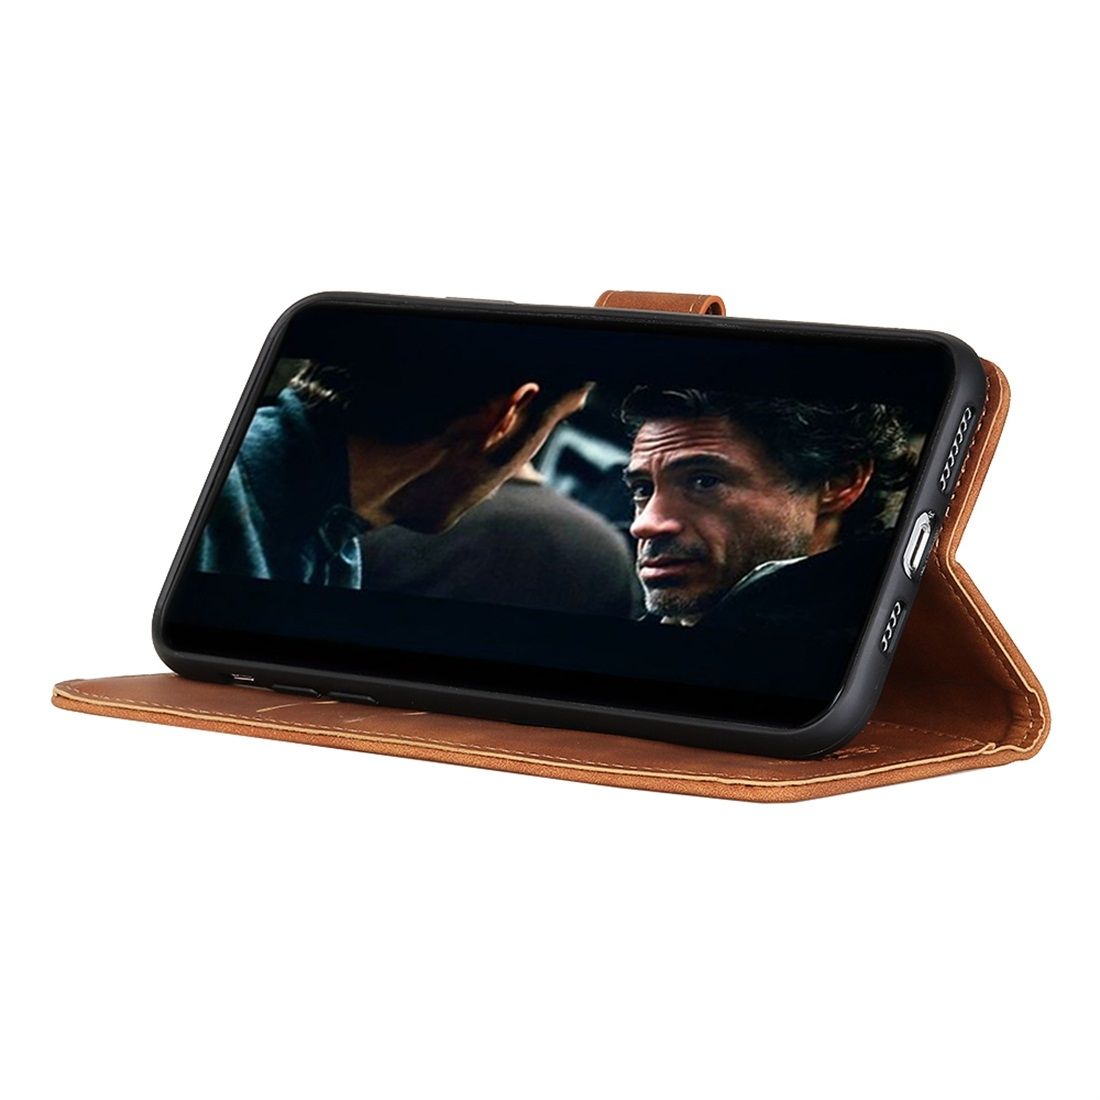 For Galaxy A20 / A30 / M10s Retro Texture PU + TPU Horizontal Flip Leather Case with Holder & Card Slots & Wallet (Brown)